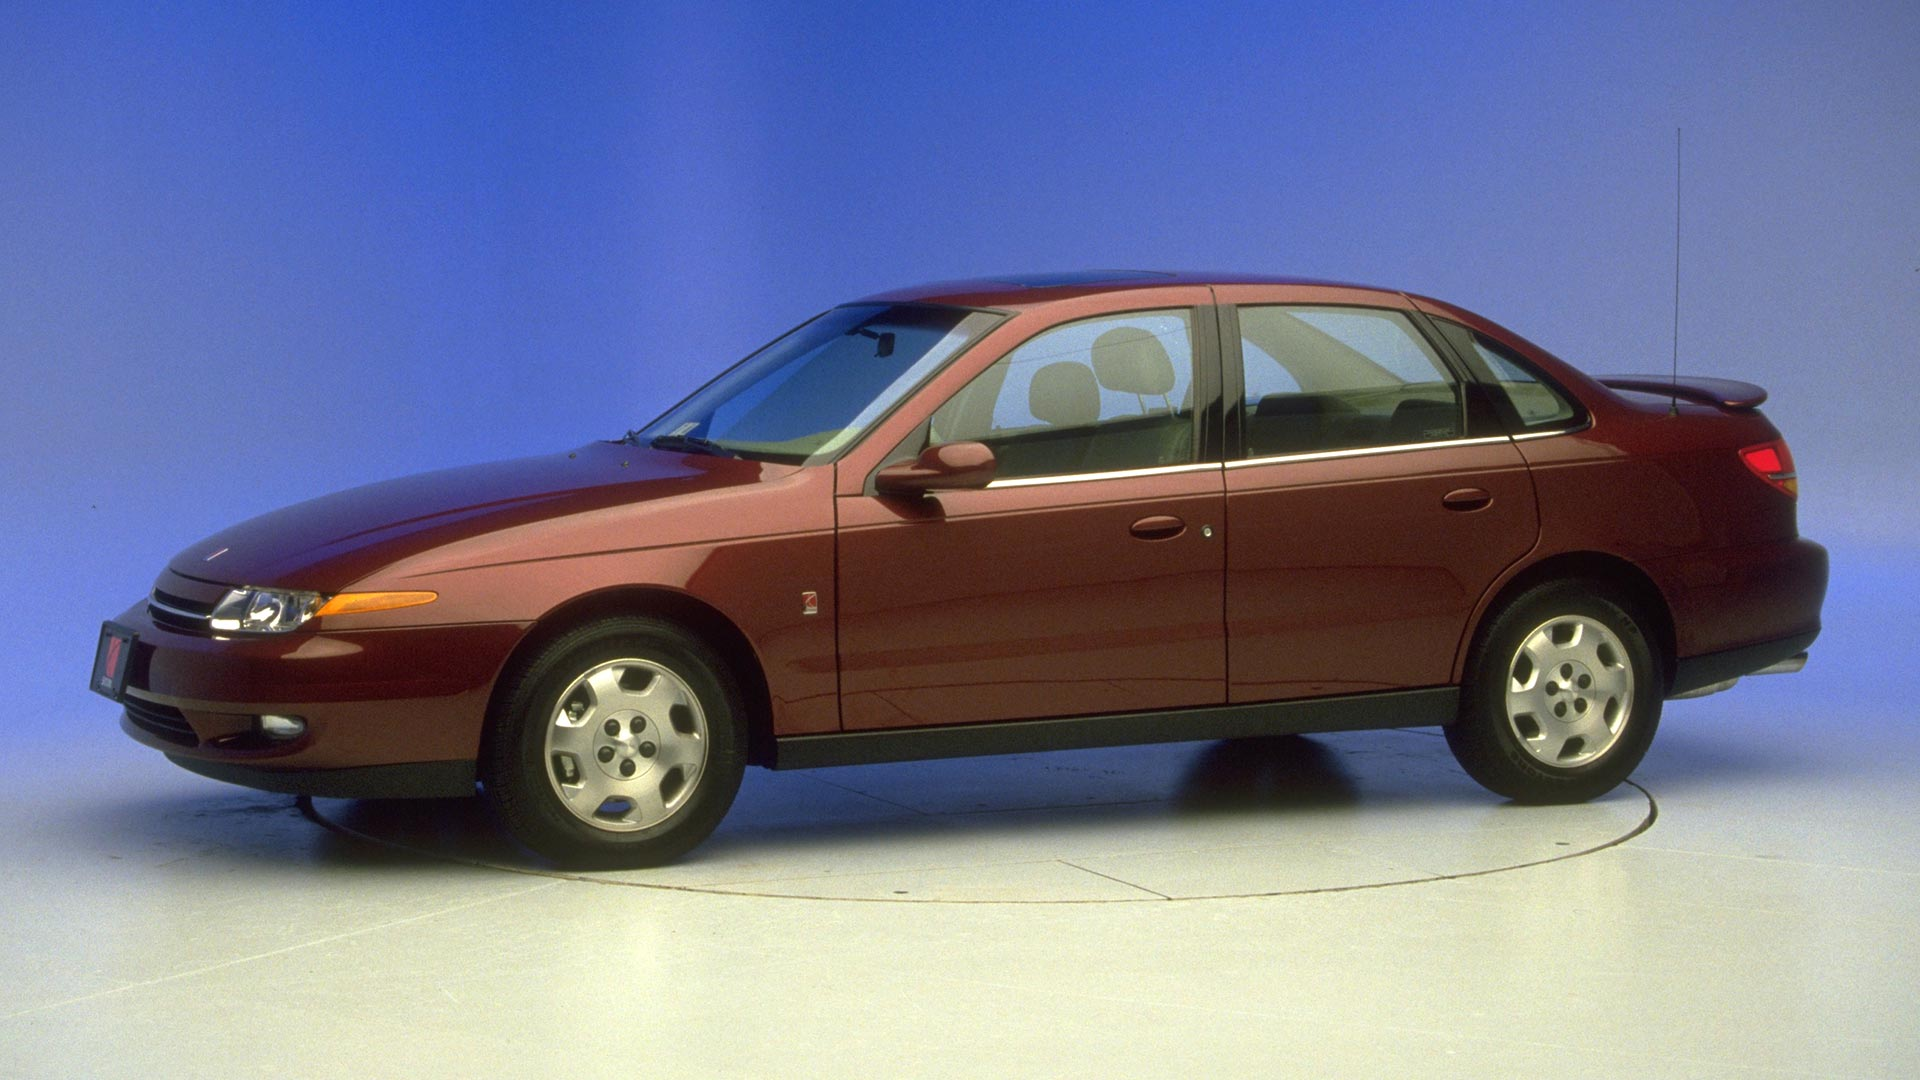 2003 Saturn L Series 4-door sedan